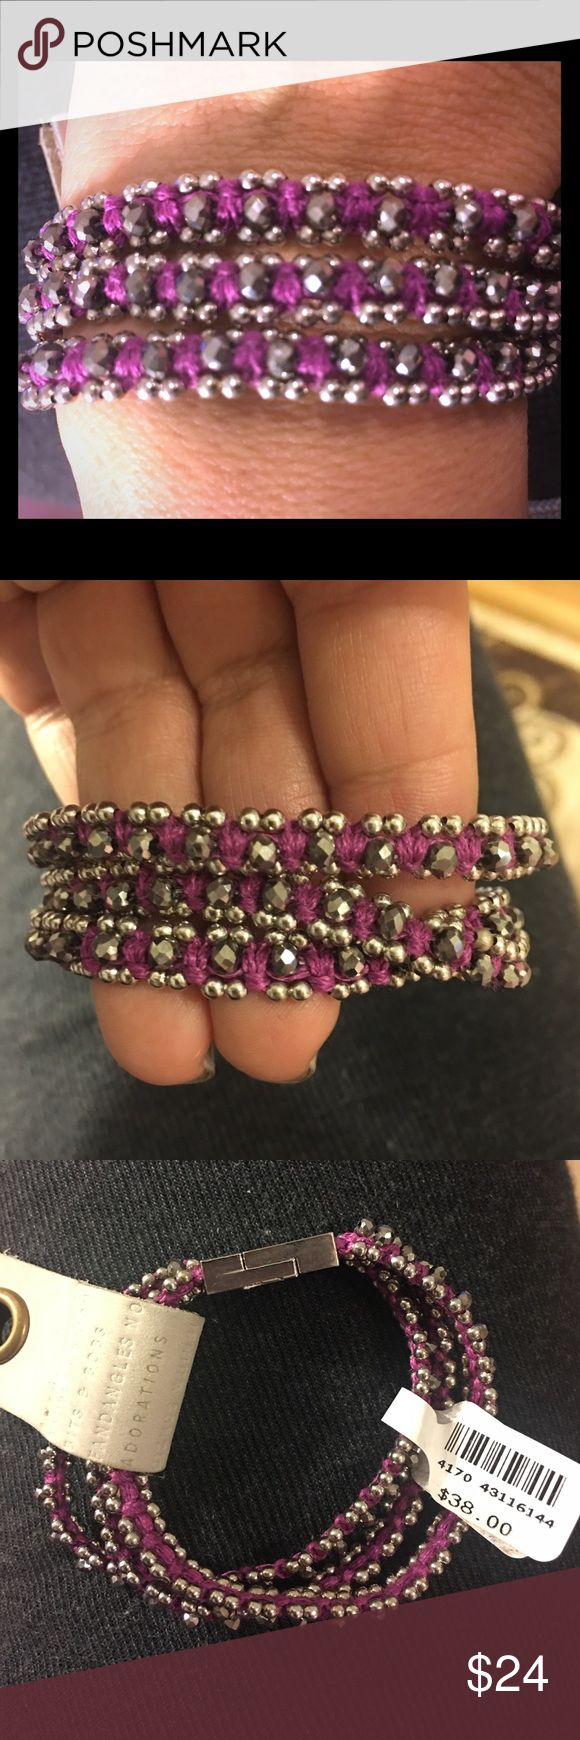 ANTHROPOLOGIE BEADED WRAP BRACELET MAGNETIC CLASP  7.5 INCHES LONG  SILVER AND GRAY BEADS MIXED WITH HOT PINK/PURPLE ACCENTS/THREADING . Anthropologie Jewelry Bracelets